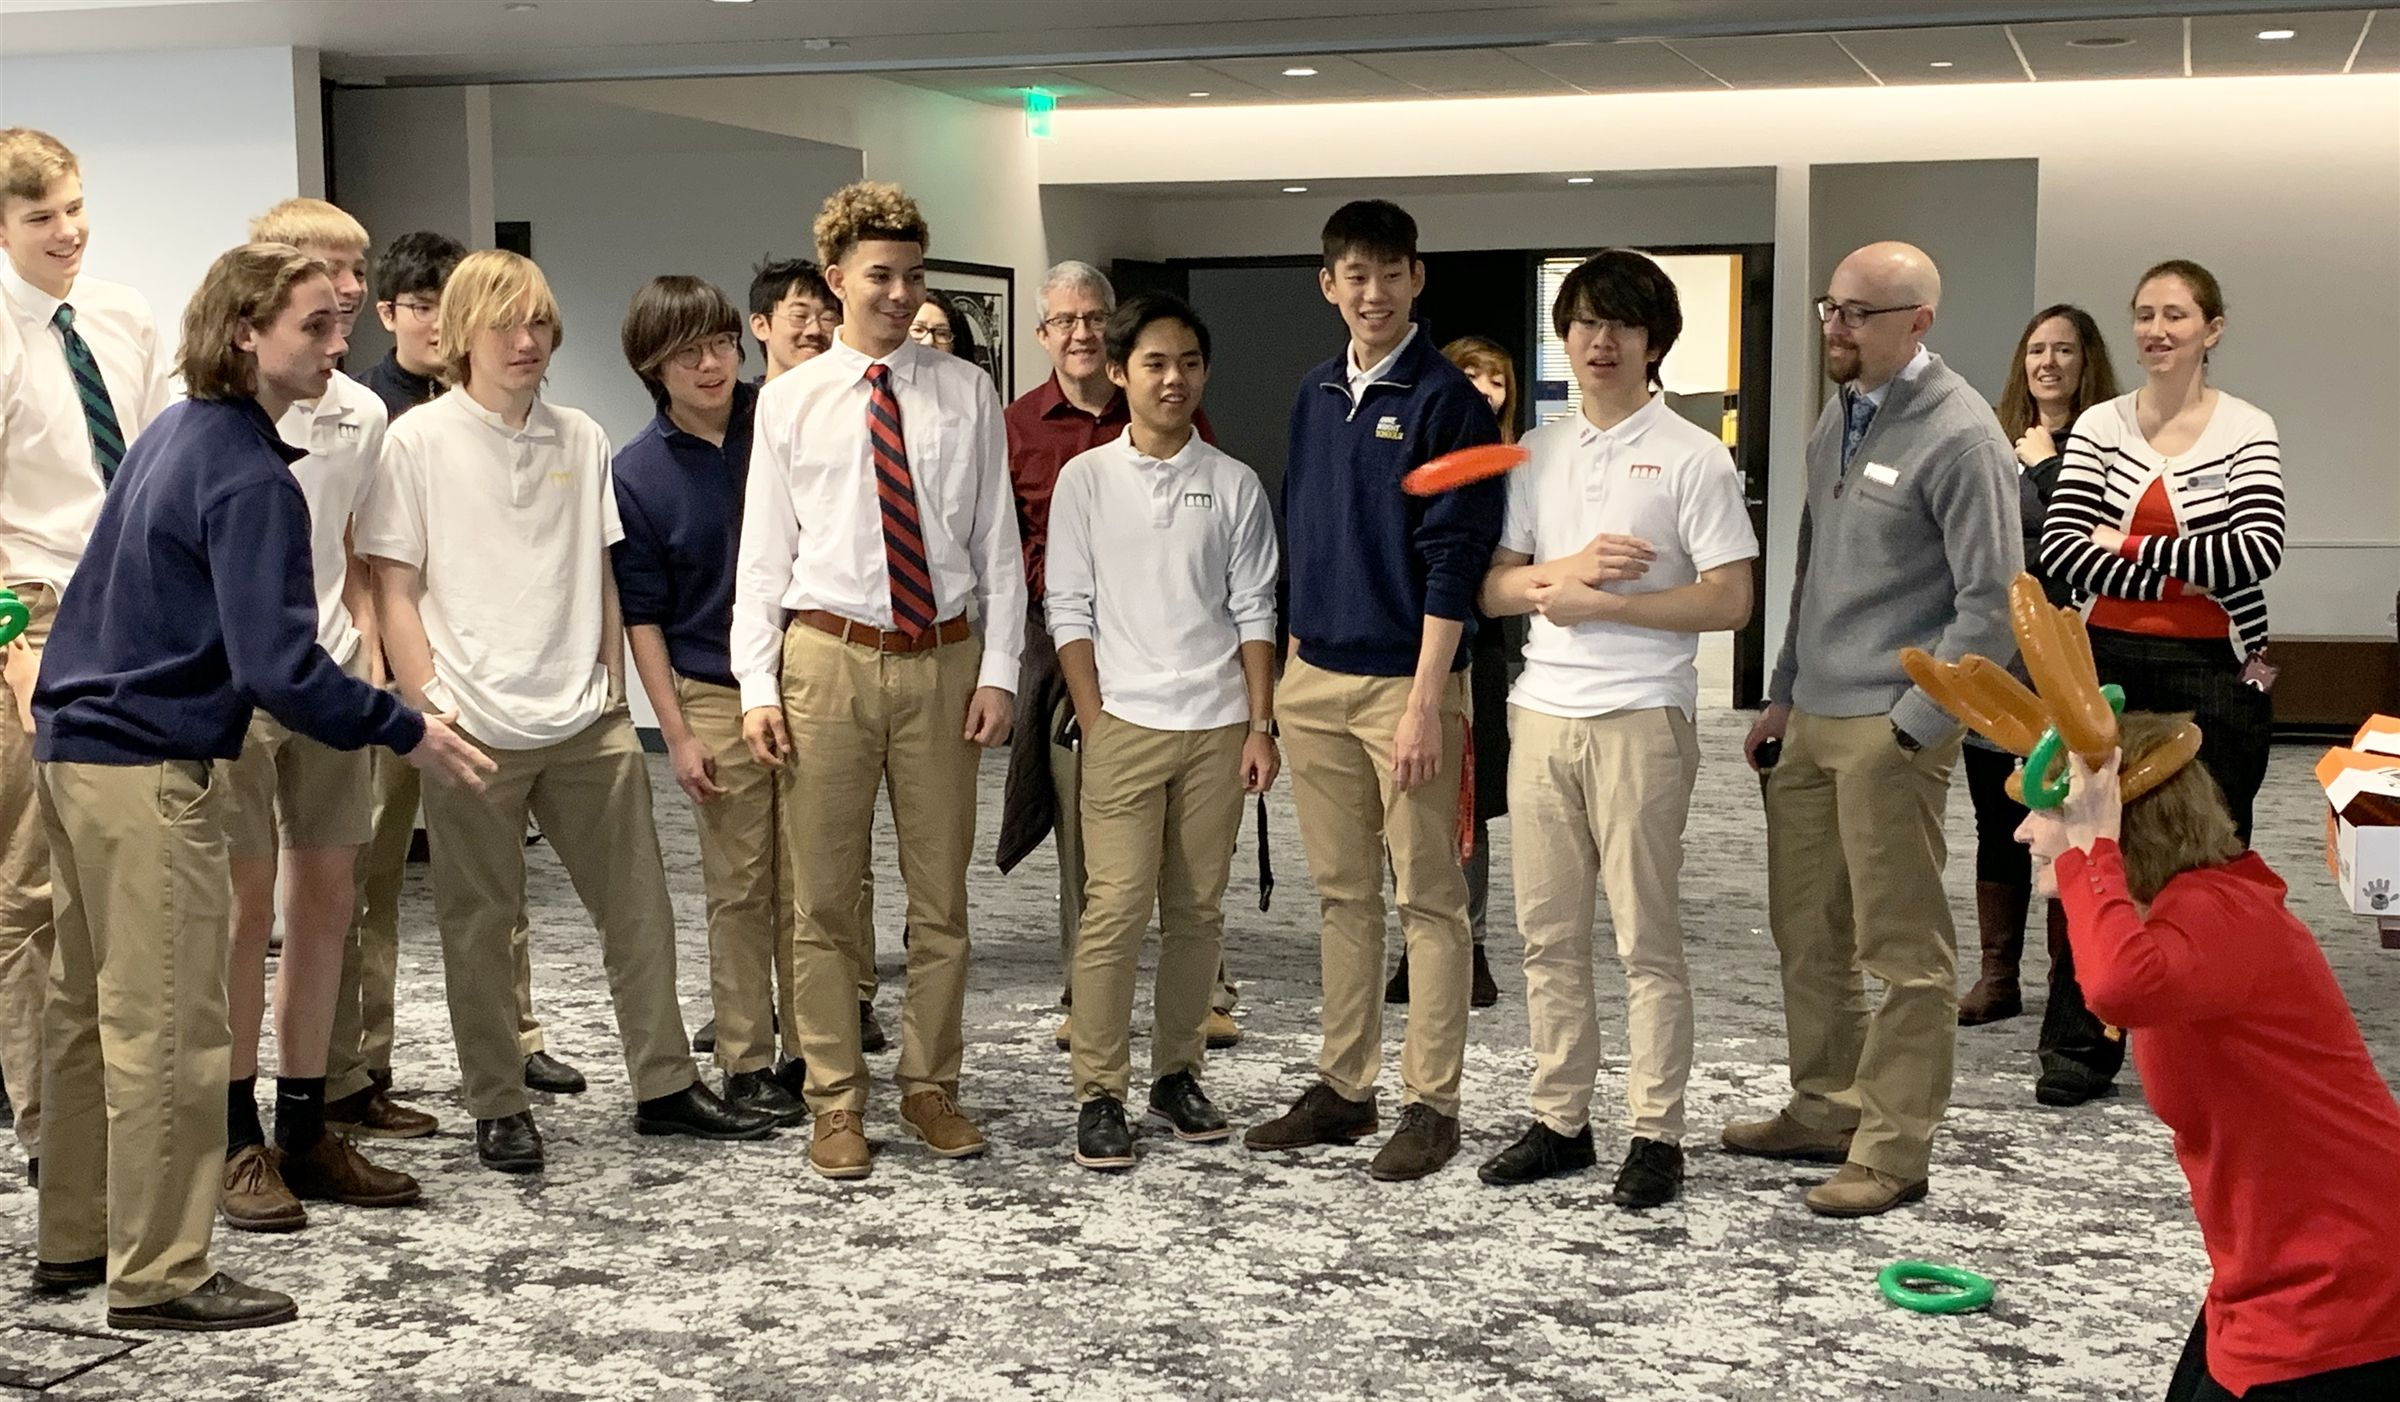 In addition to a range of opportunities beyond the classroom, the Upper School for Boys makes time for relaxation, fun and games (even with their administrators and teachers!).